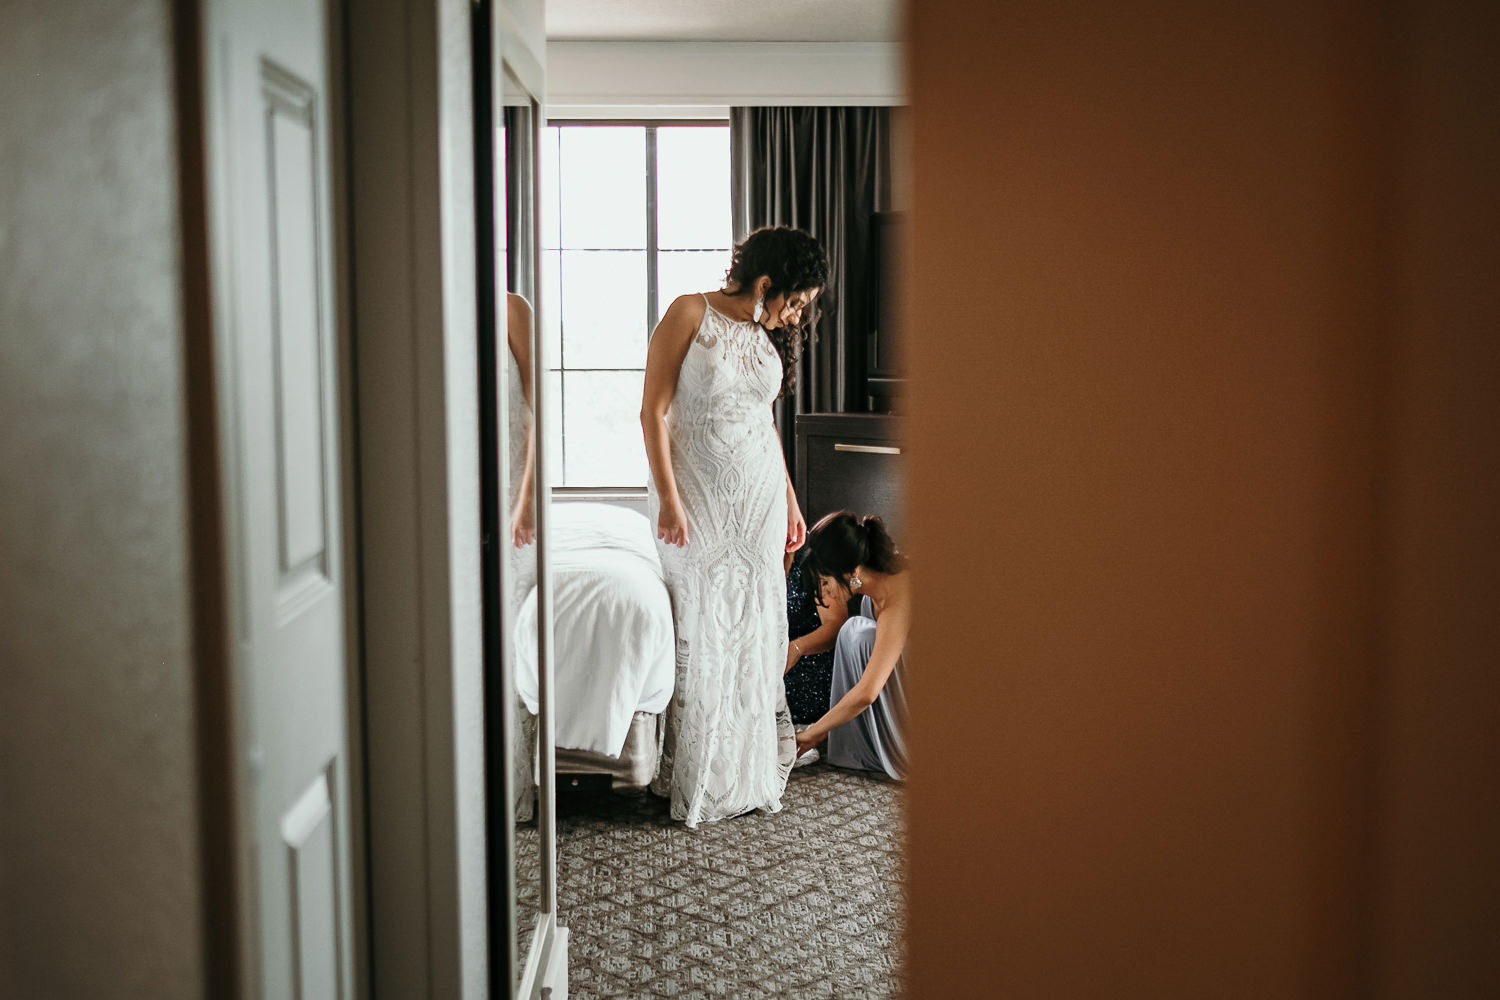 sneaky shot from other room of bride putting on shoes